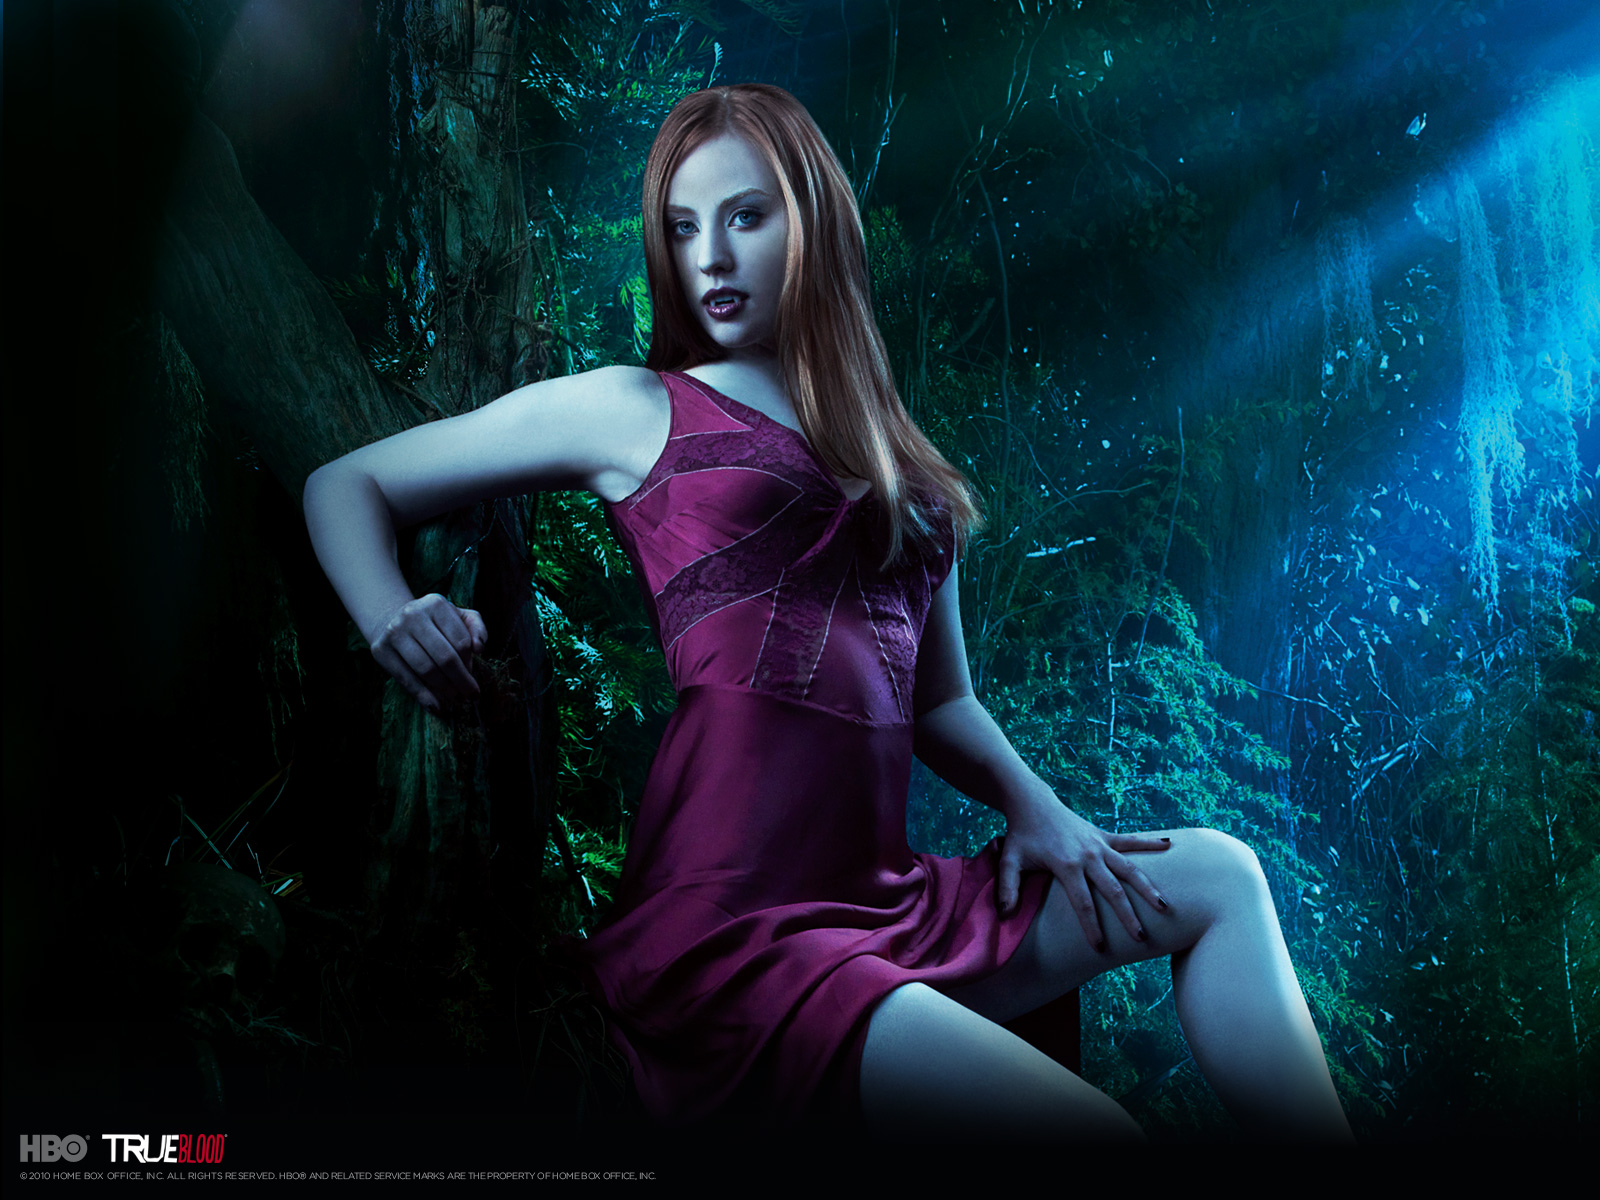 True Blood Deborah Ann Woll as Jessica wallpaper hd